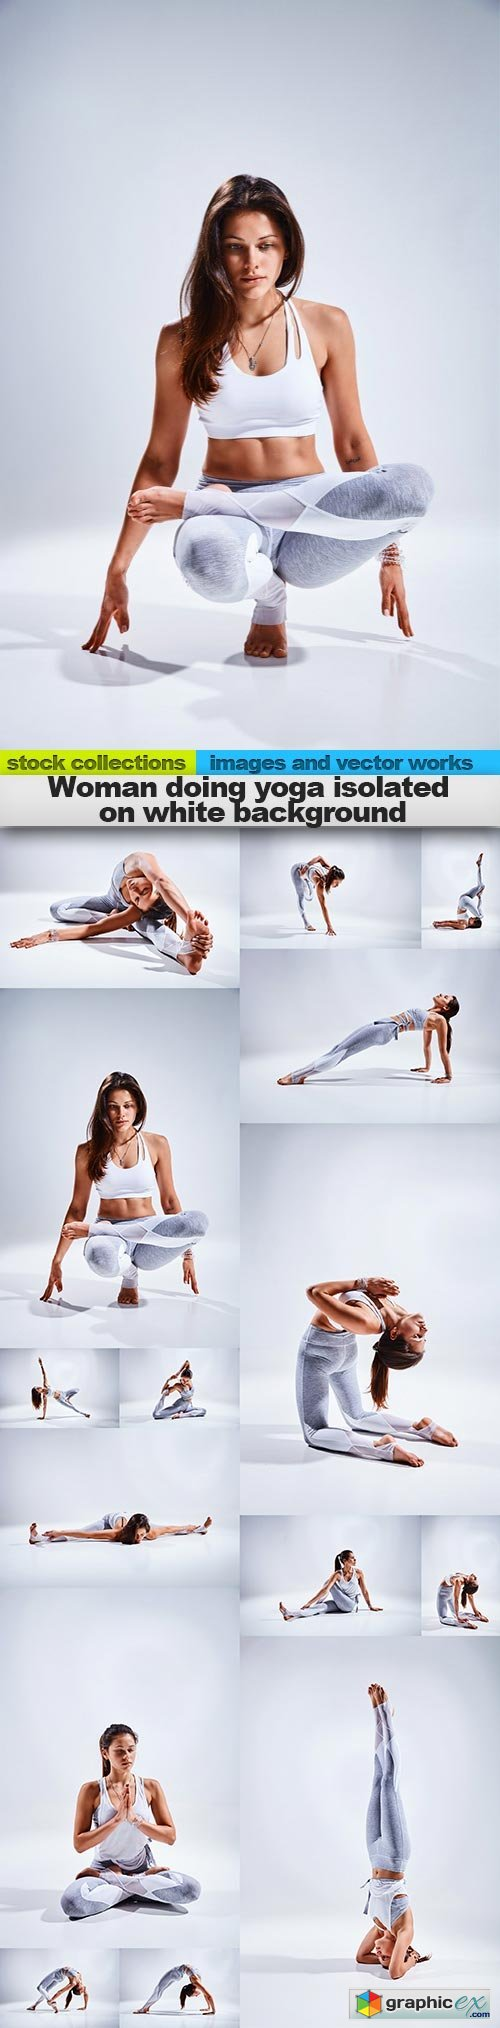 Woman doing yoga isolated on white background, 15 x UHQ JPEG